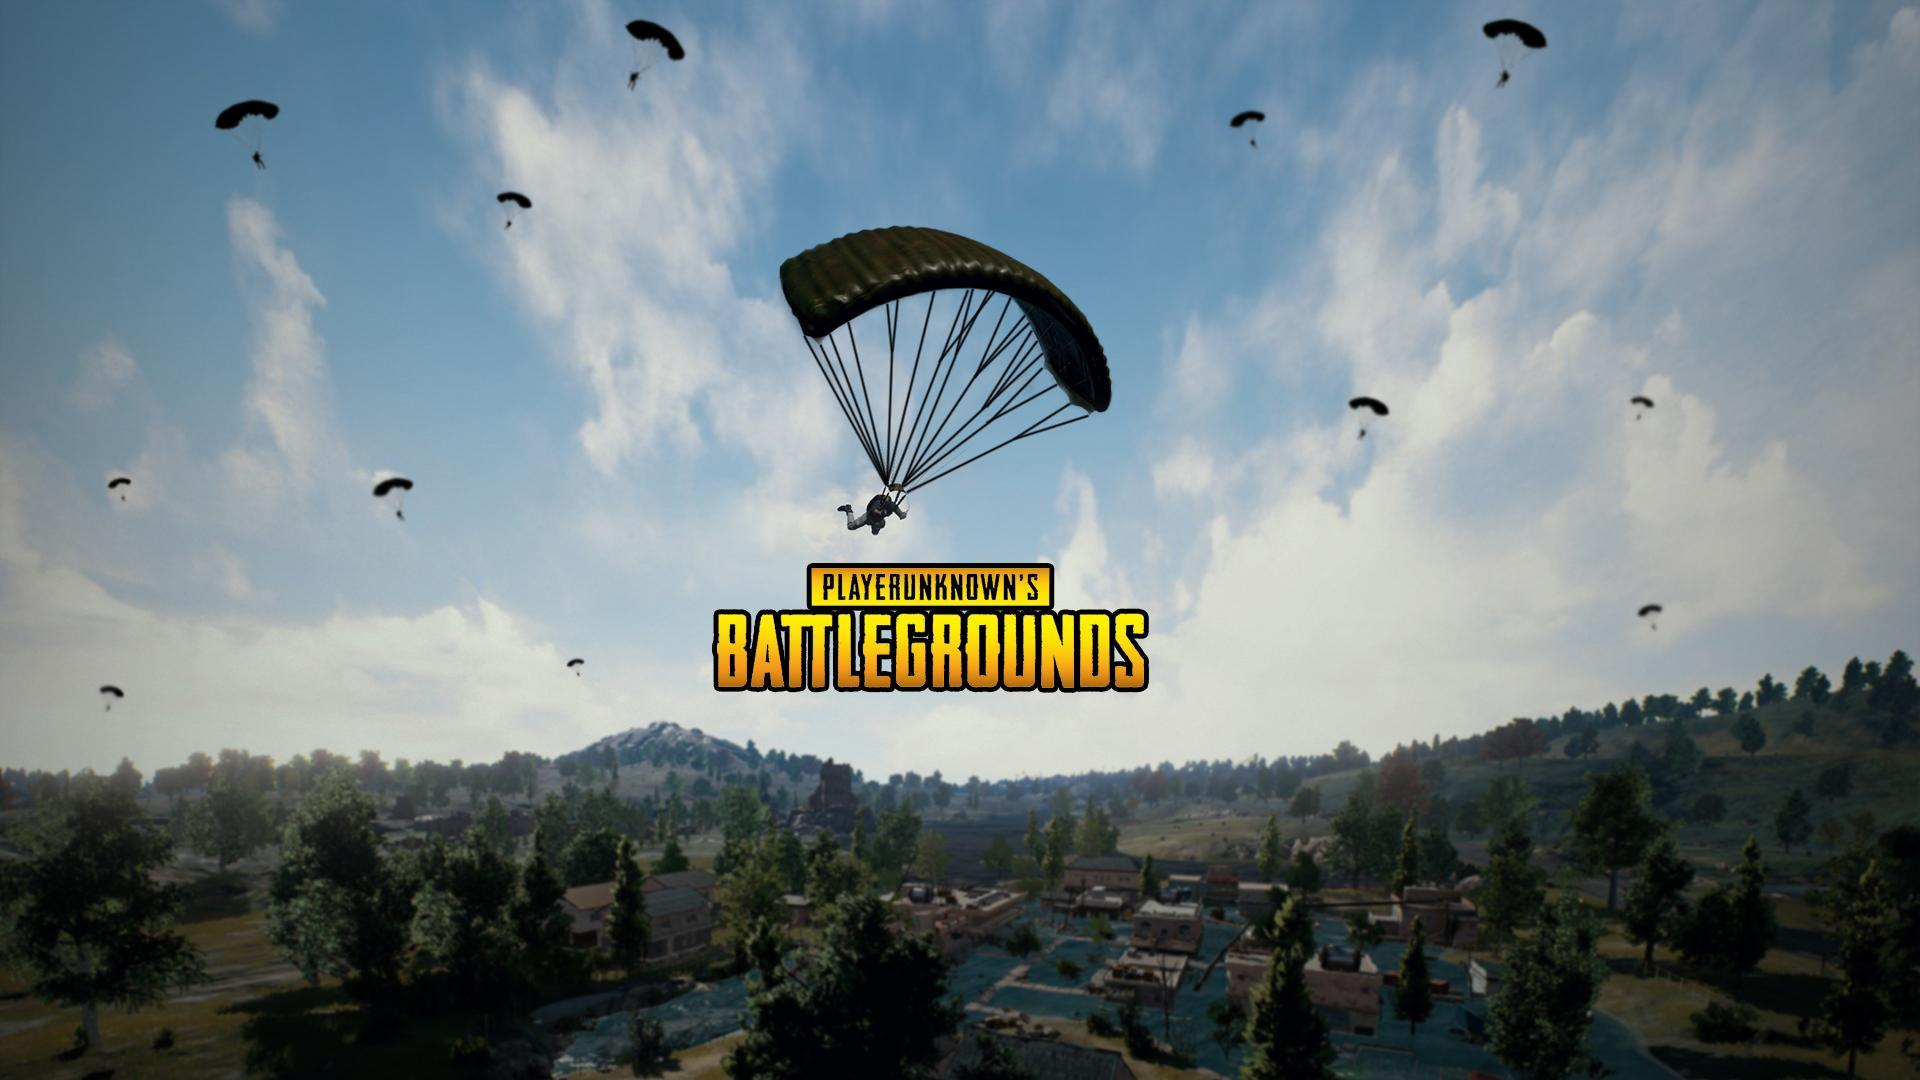 Pubg Wallpapers On Wallpapers 1080p HD